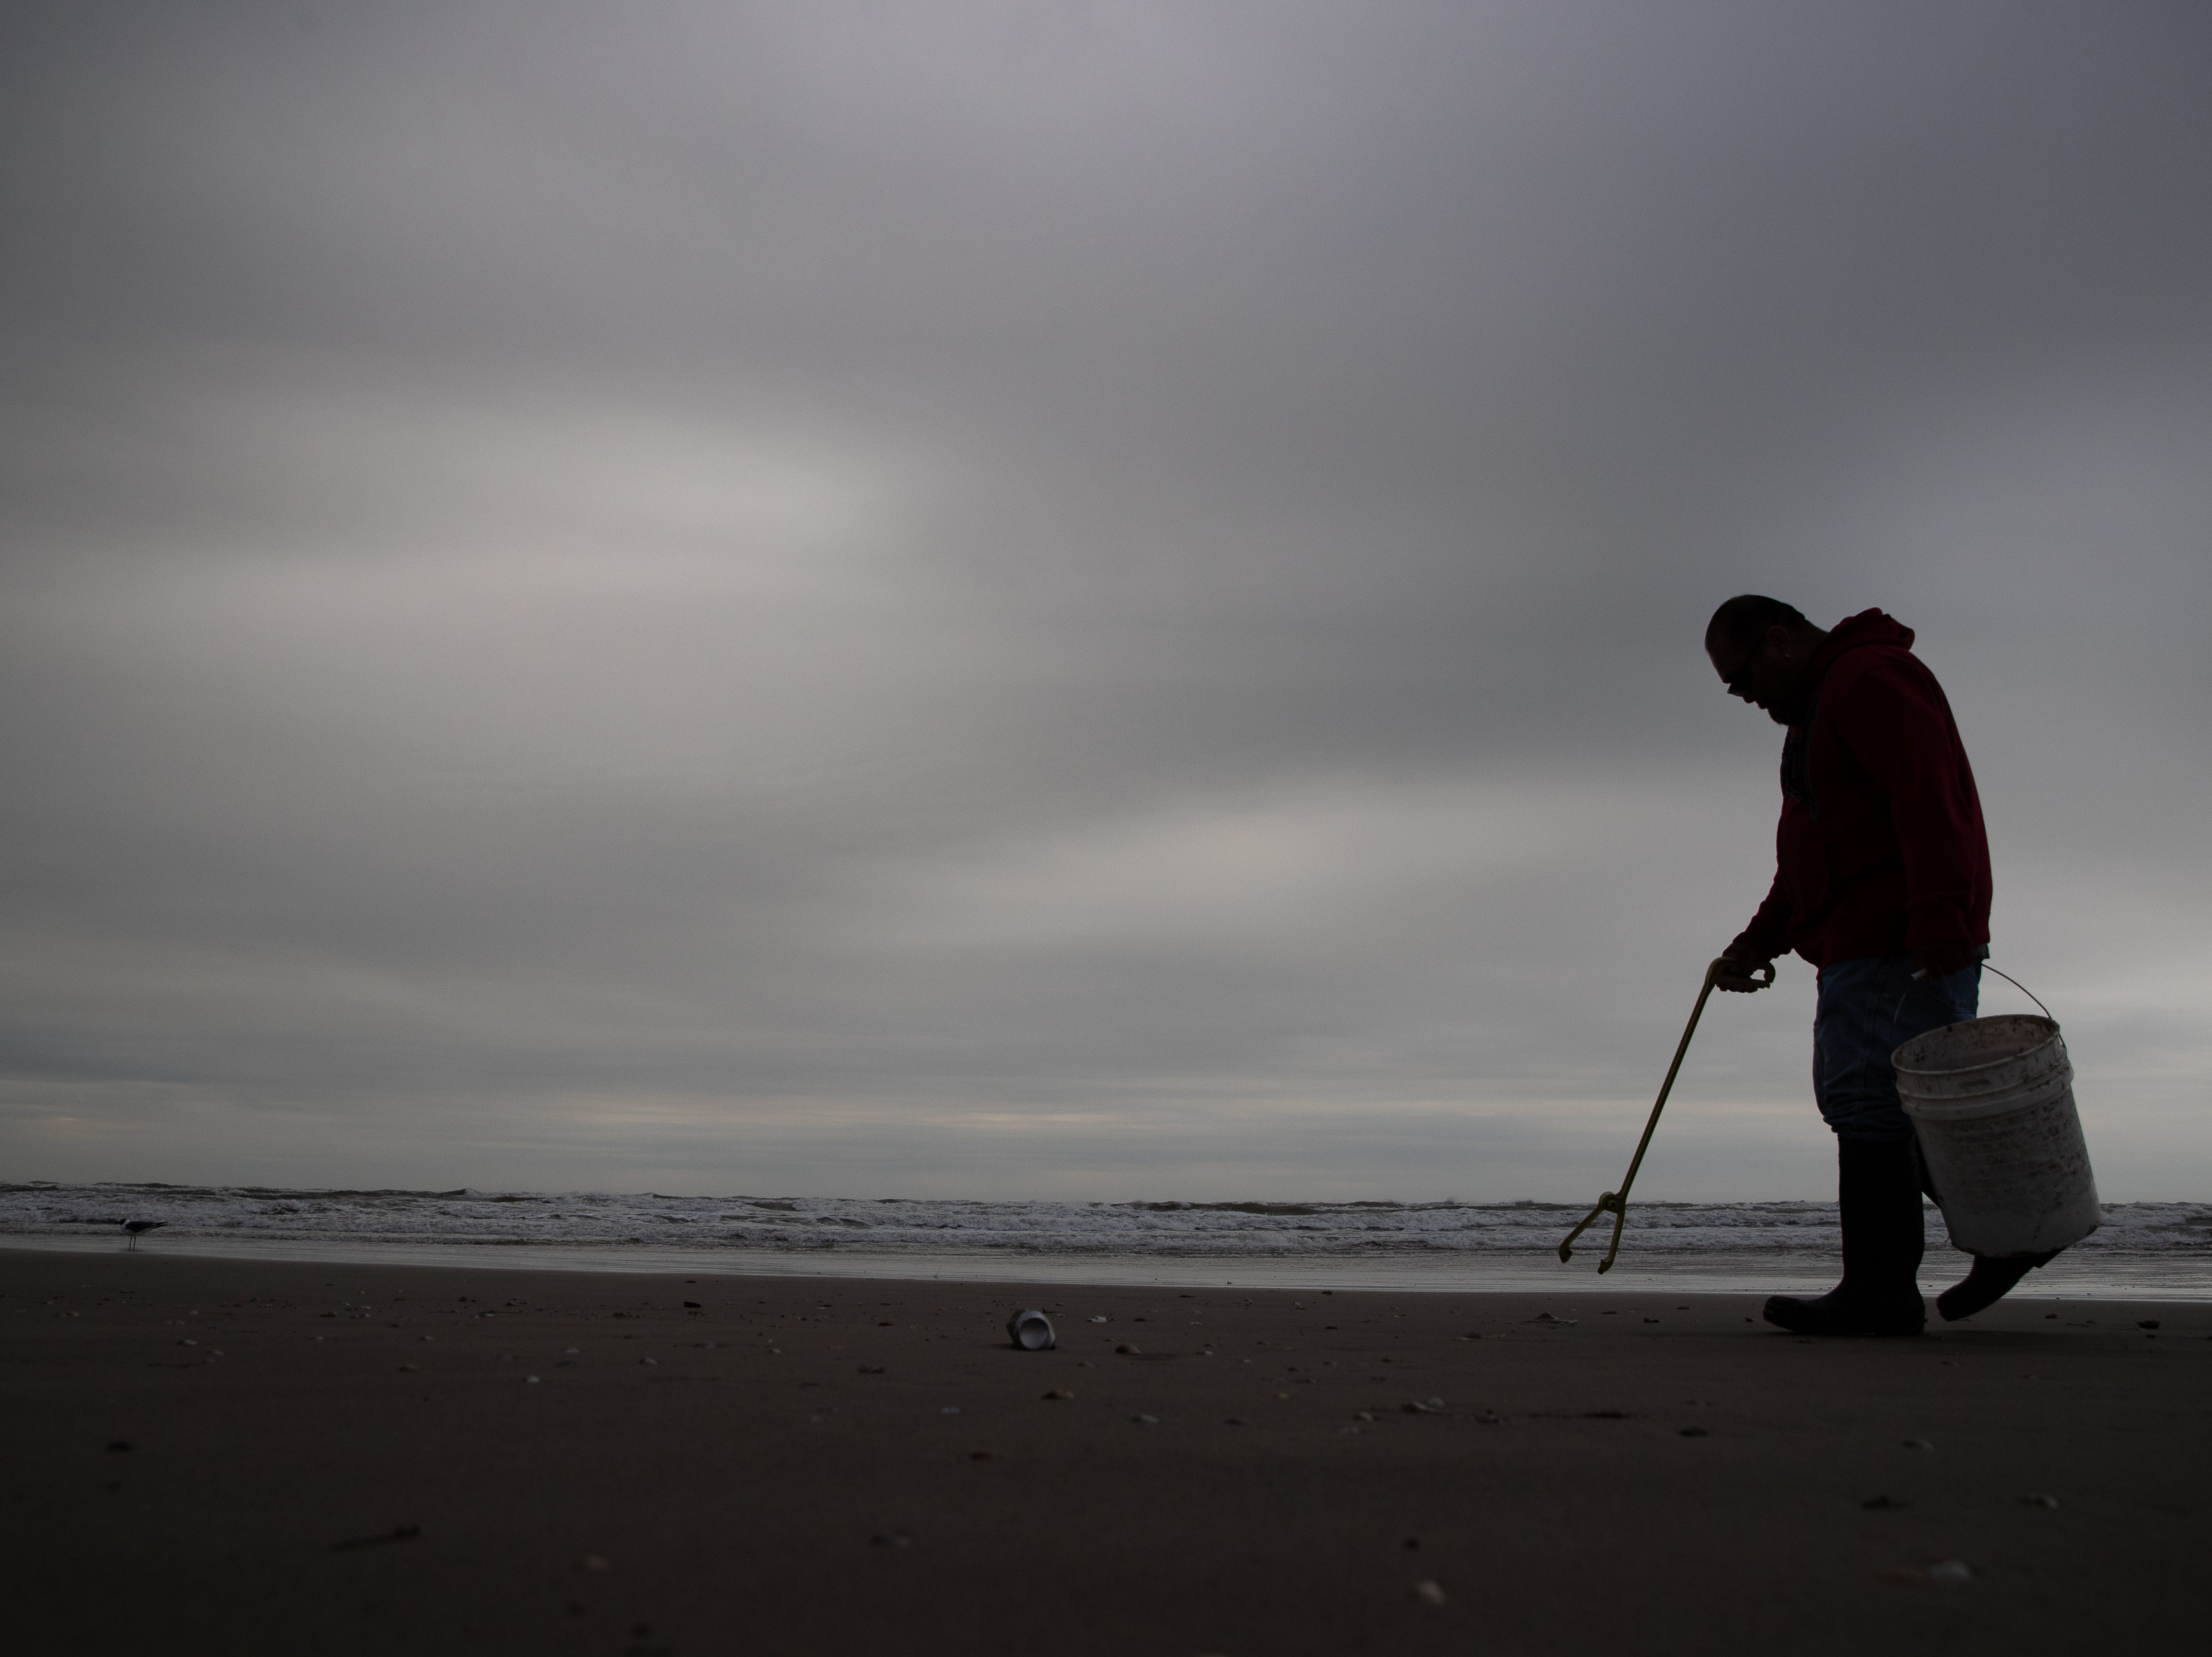 A Port Aransas sanitation worker walks the beach in the early morning collecting trash left behind form the day before during the week of spring break on Friday, March 15, 2019.